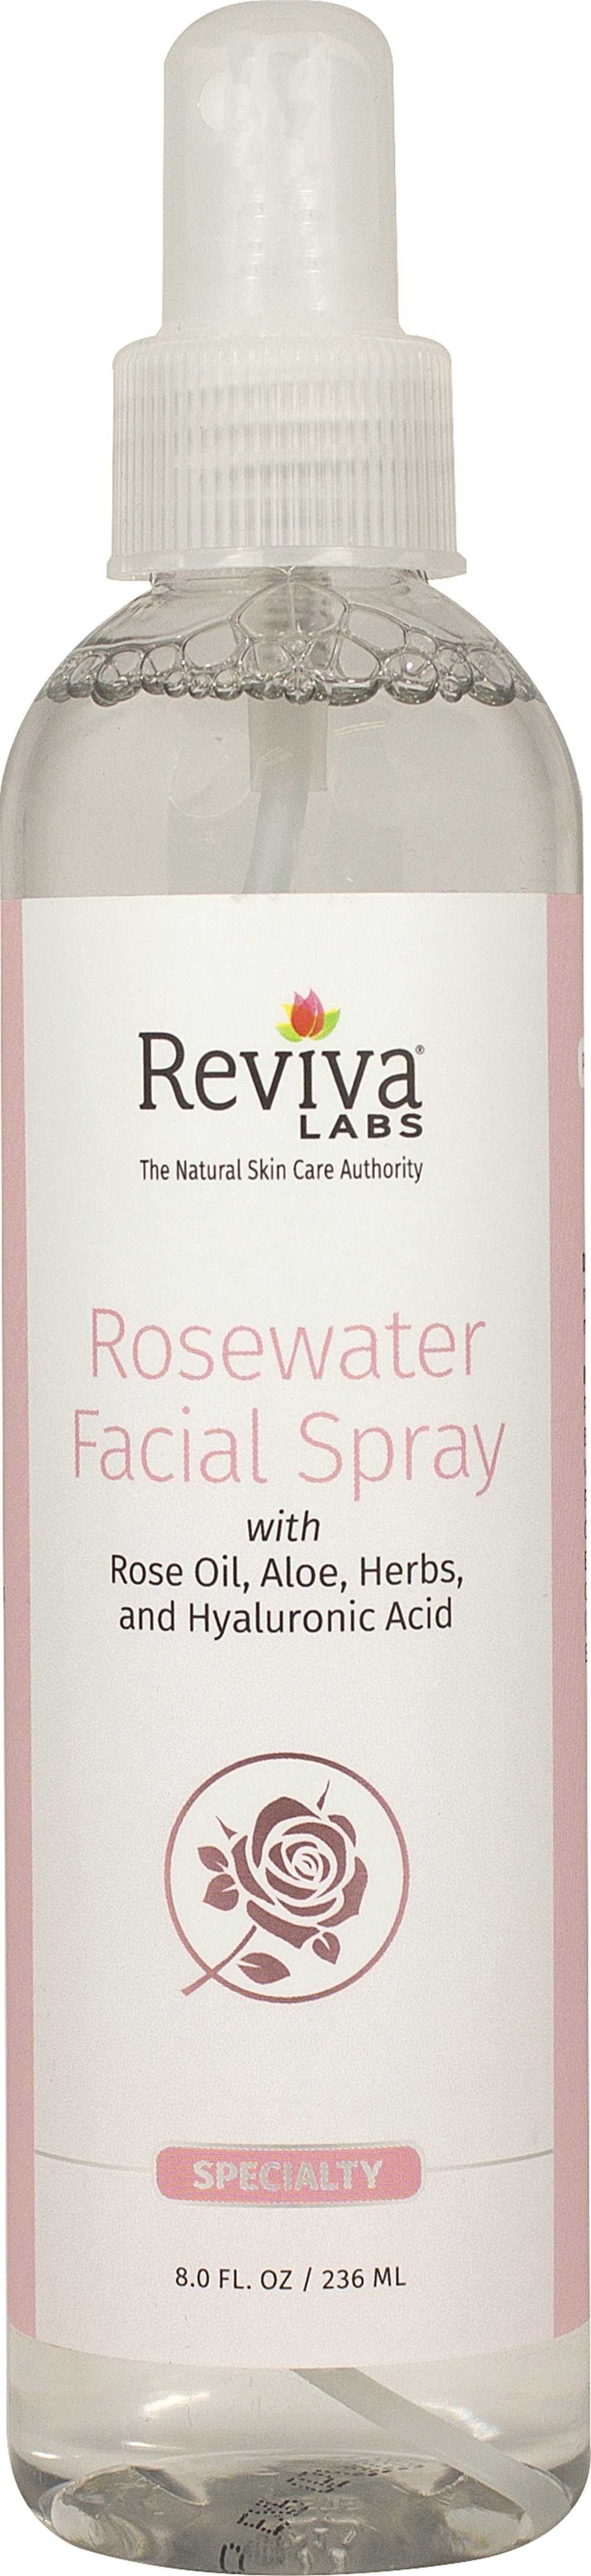 Rosewater Facial Spray <p><strong>From the Manufacturer's Label</strong></p><p>Rosewater Facial Spray is manufactured by Reviva® Labs.</p><p>- No Animal Ingredients</p><p>- No Animal Testing</p> 8 oz Spray  $5.49